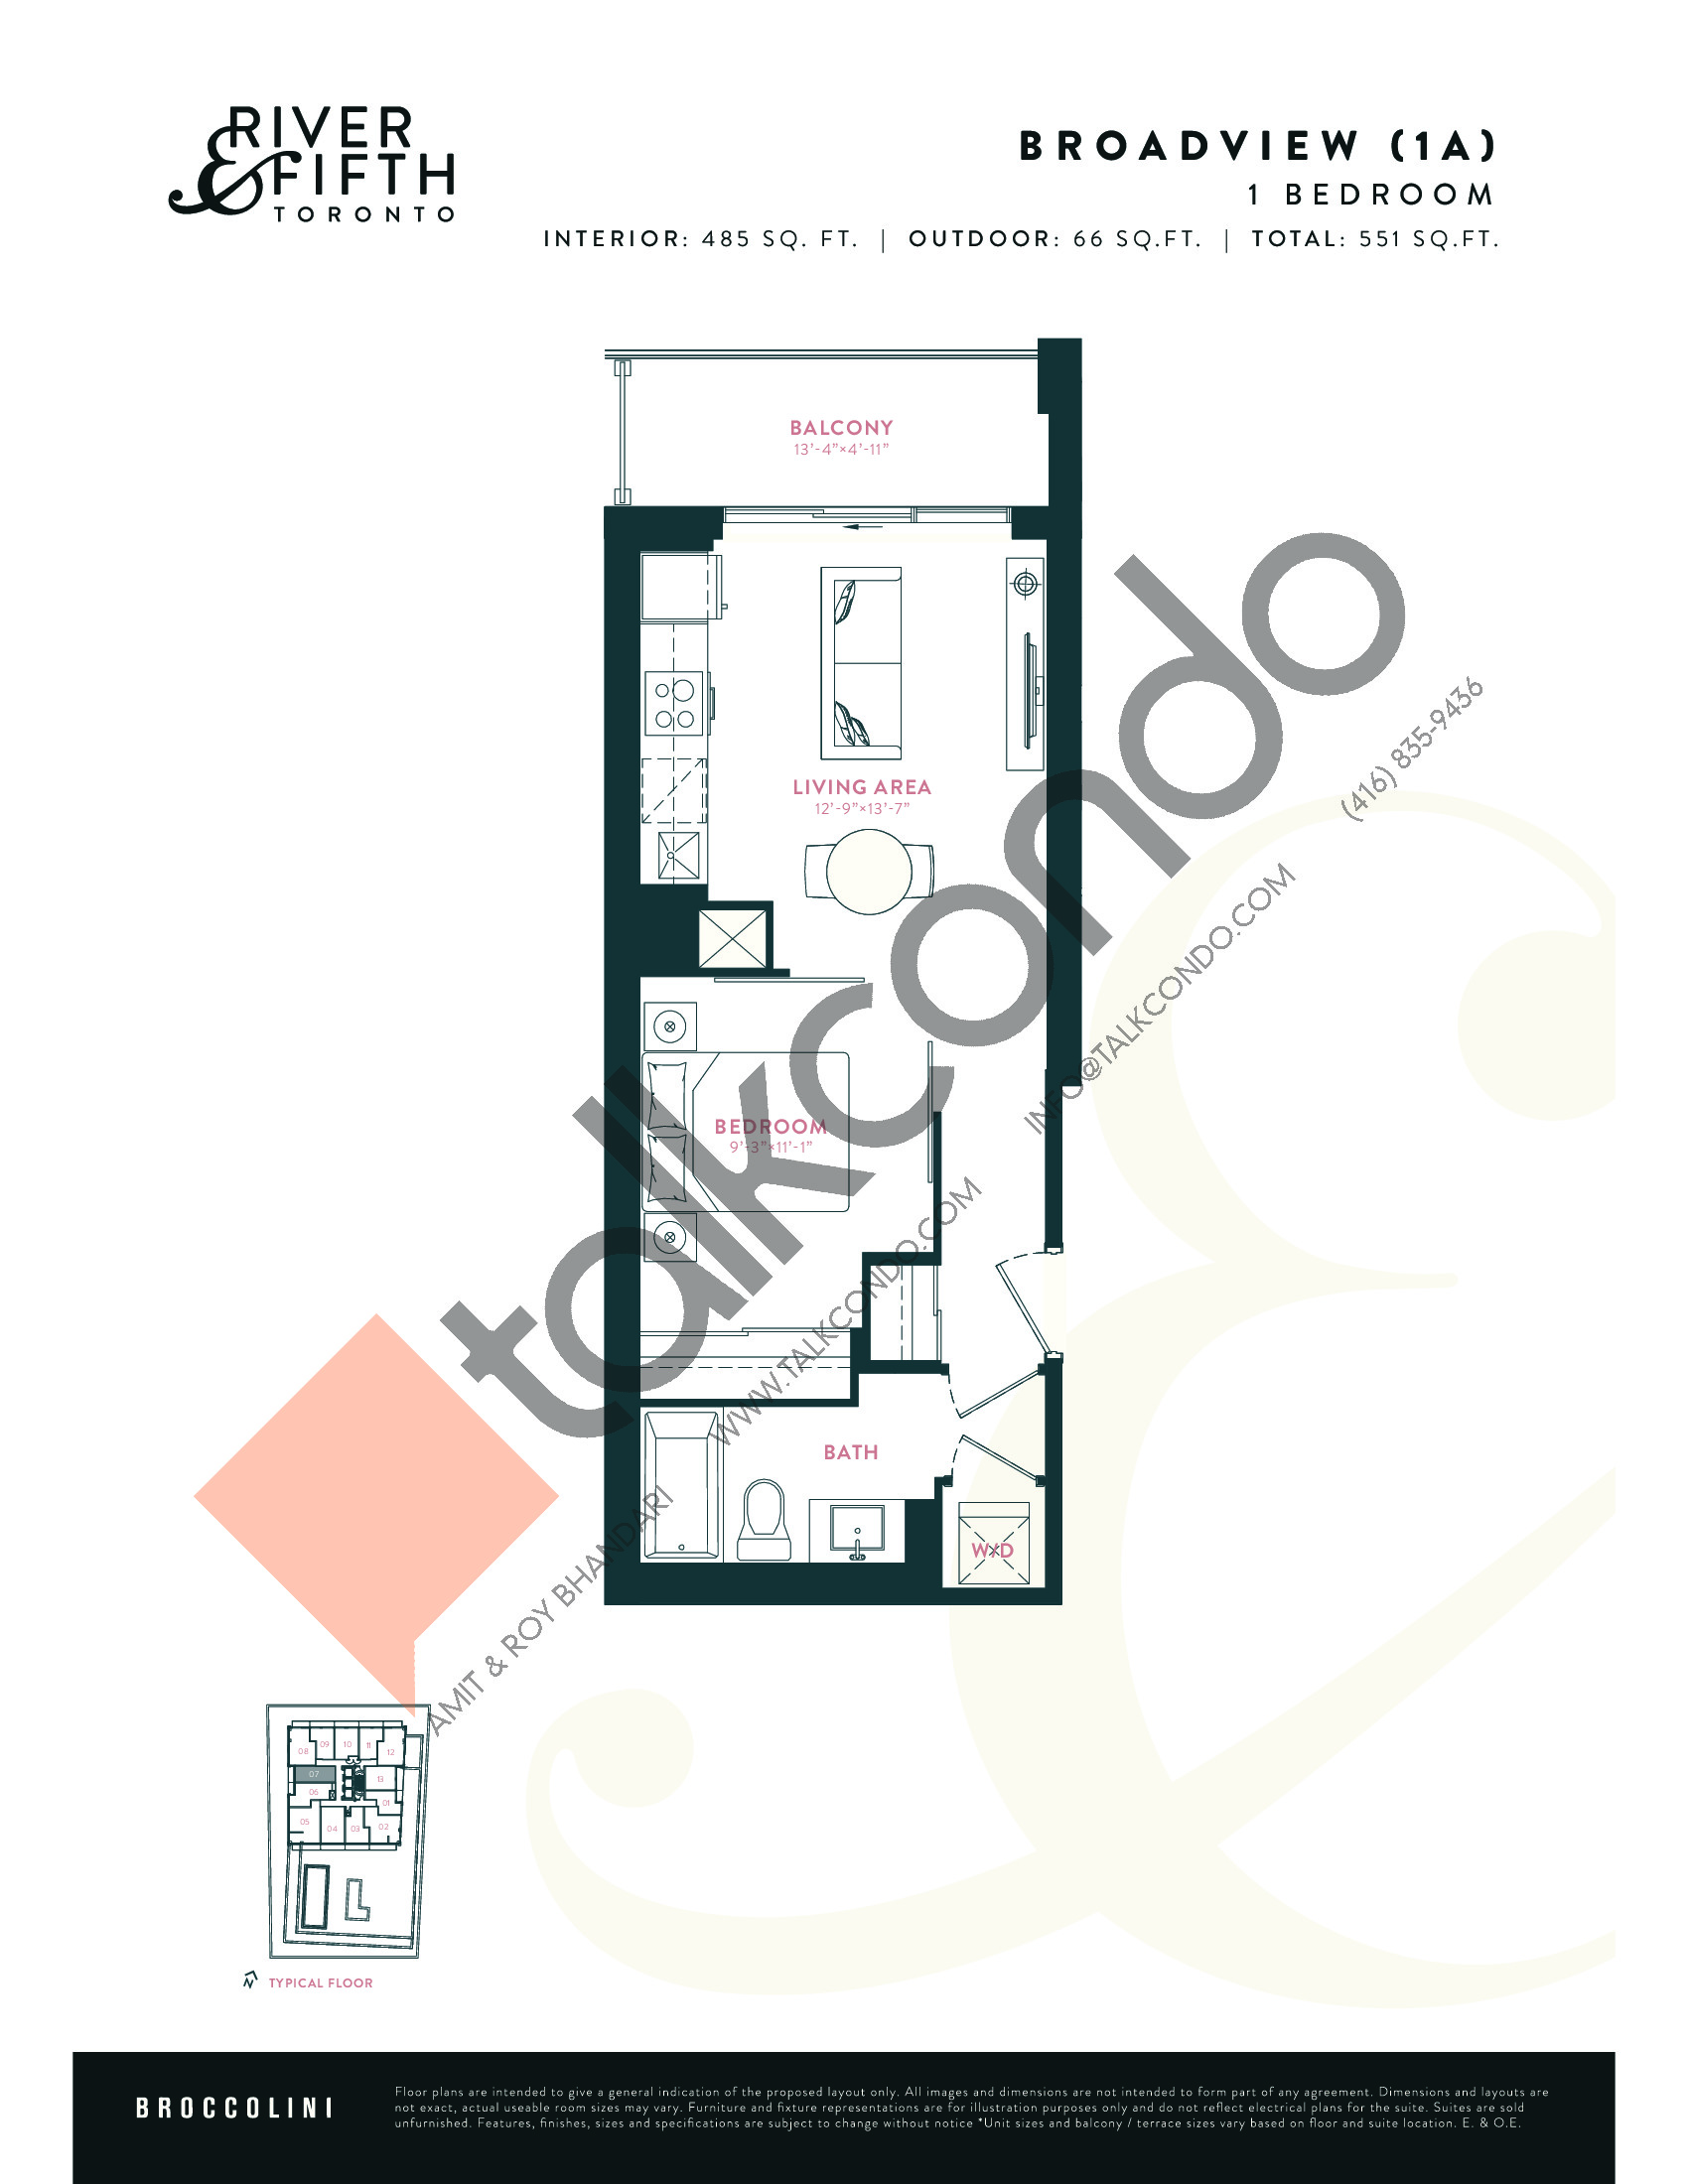 Broadview (1A) Floor Plan at River & Fifth Condos - 485 sq.ft